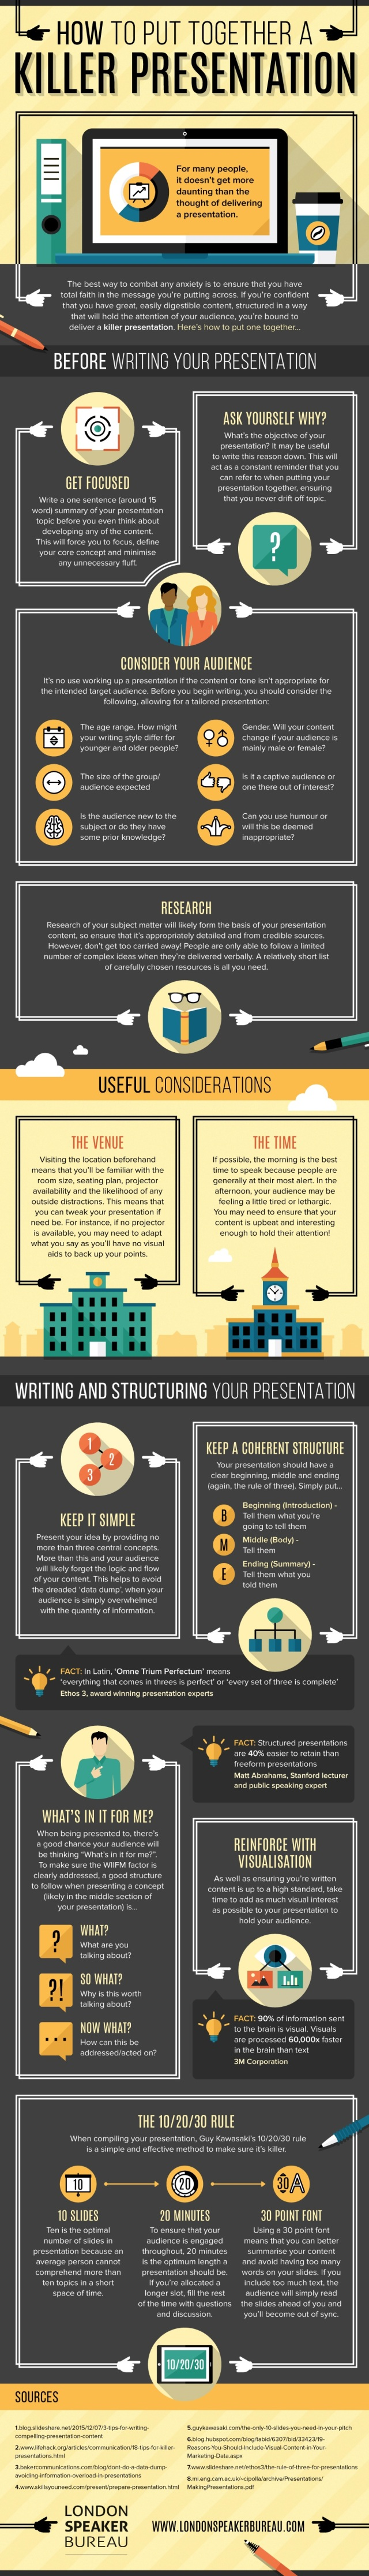 steps to killer presentation